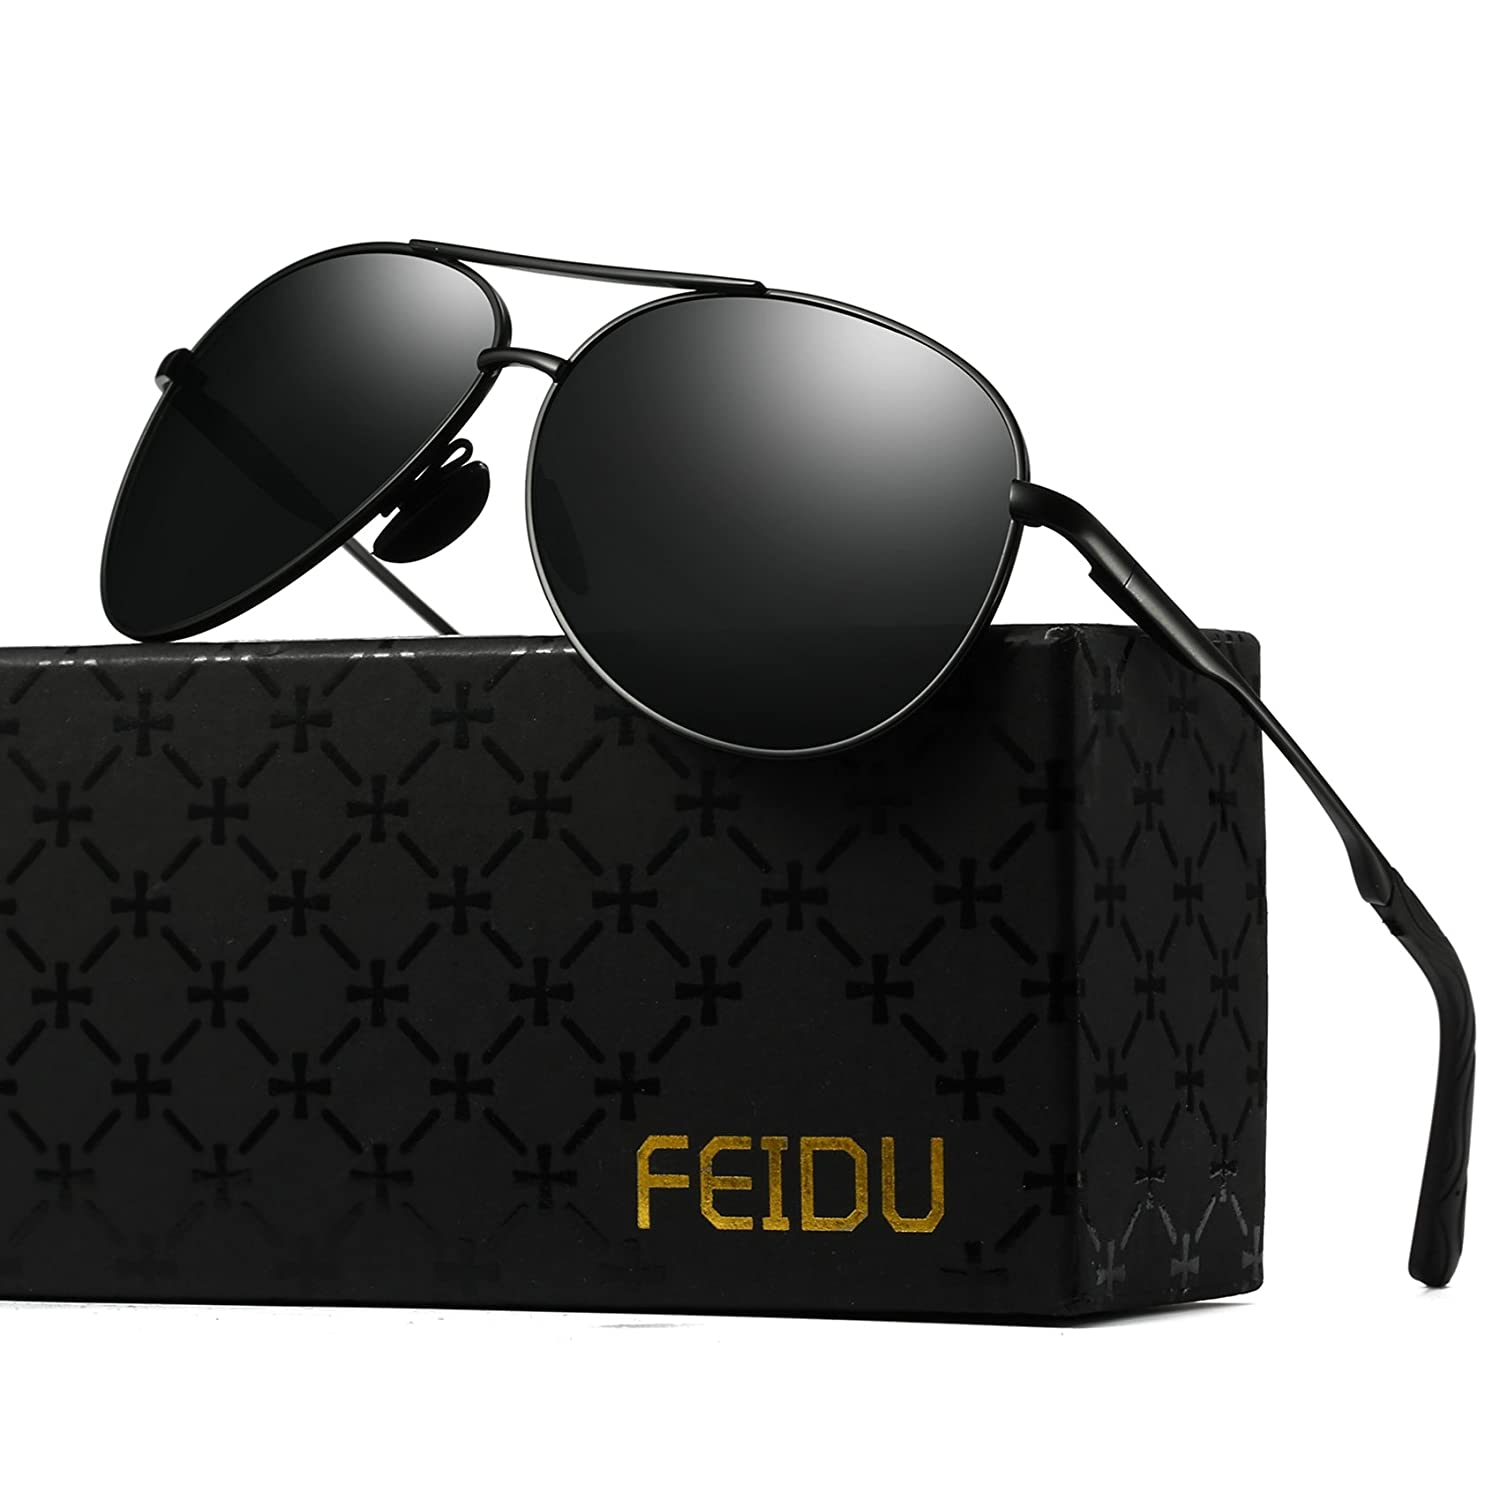 FEIDU Mens Polarized Aviator Sunglasses Metal Frame Unisex Sun Glasses FD9001 2.28) FD 9001